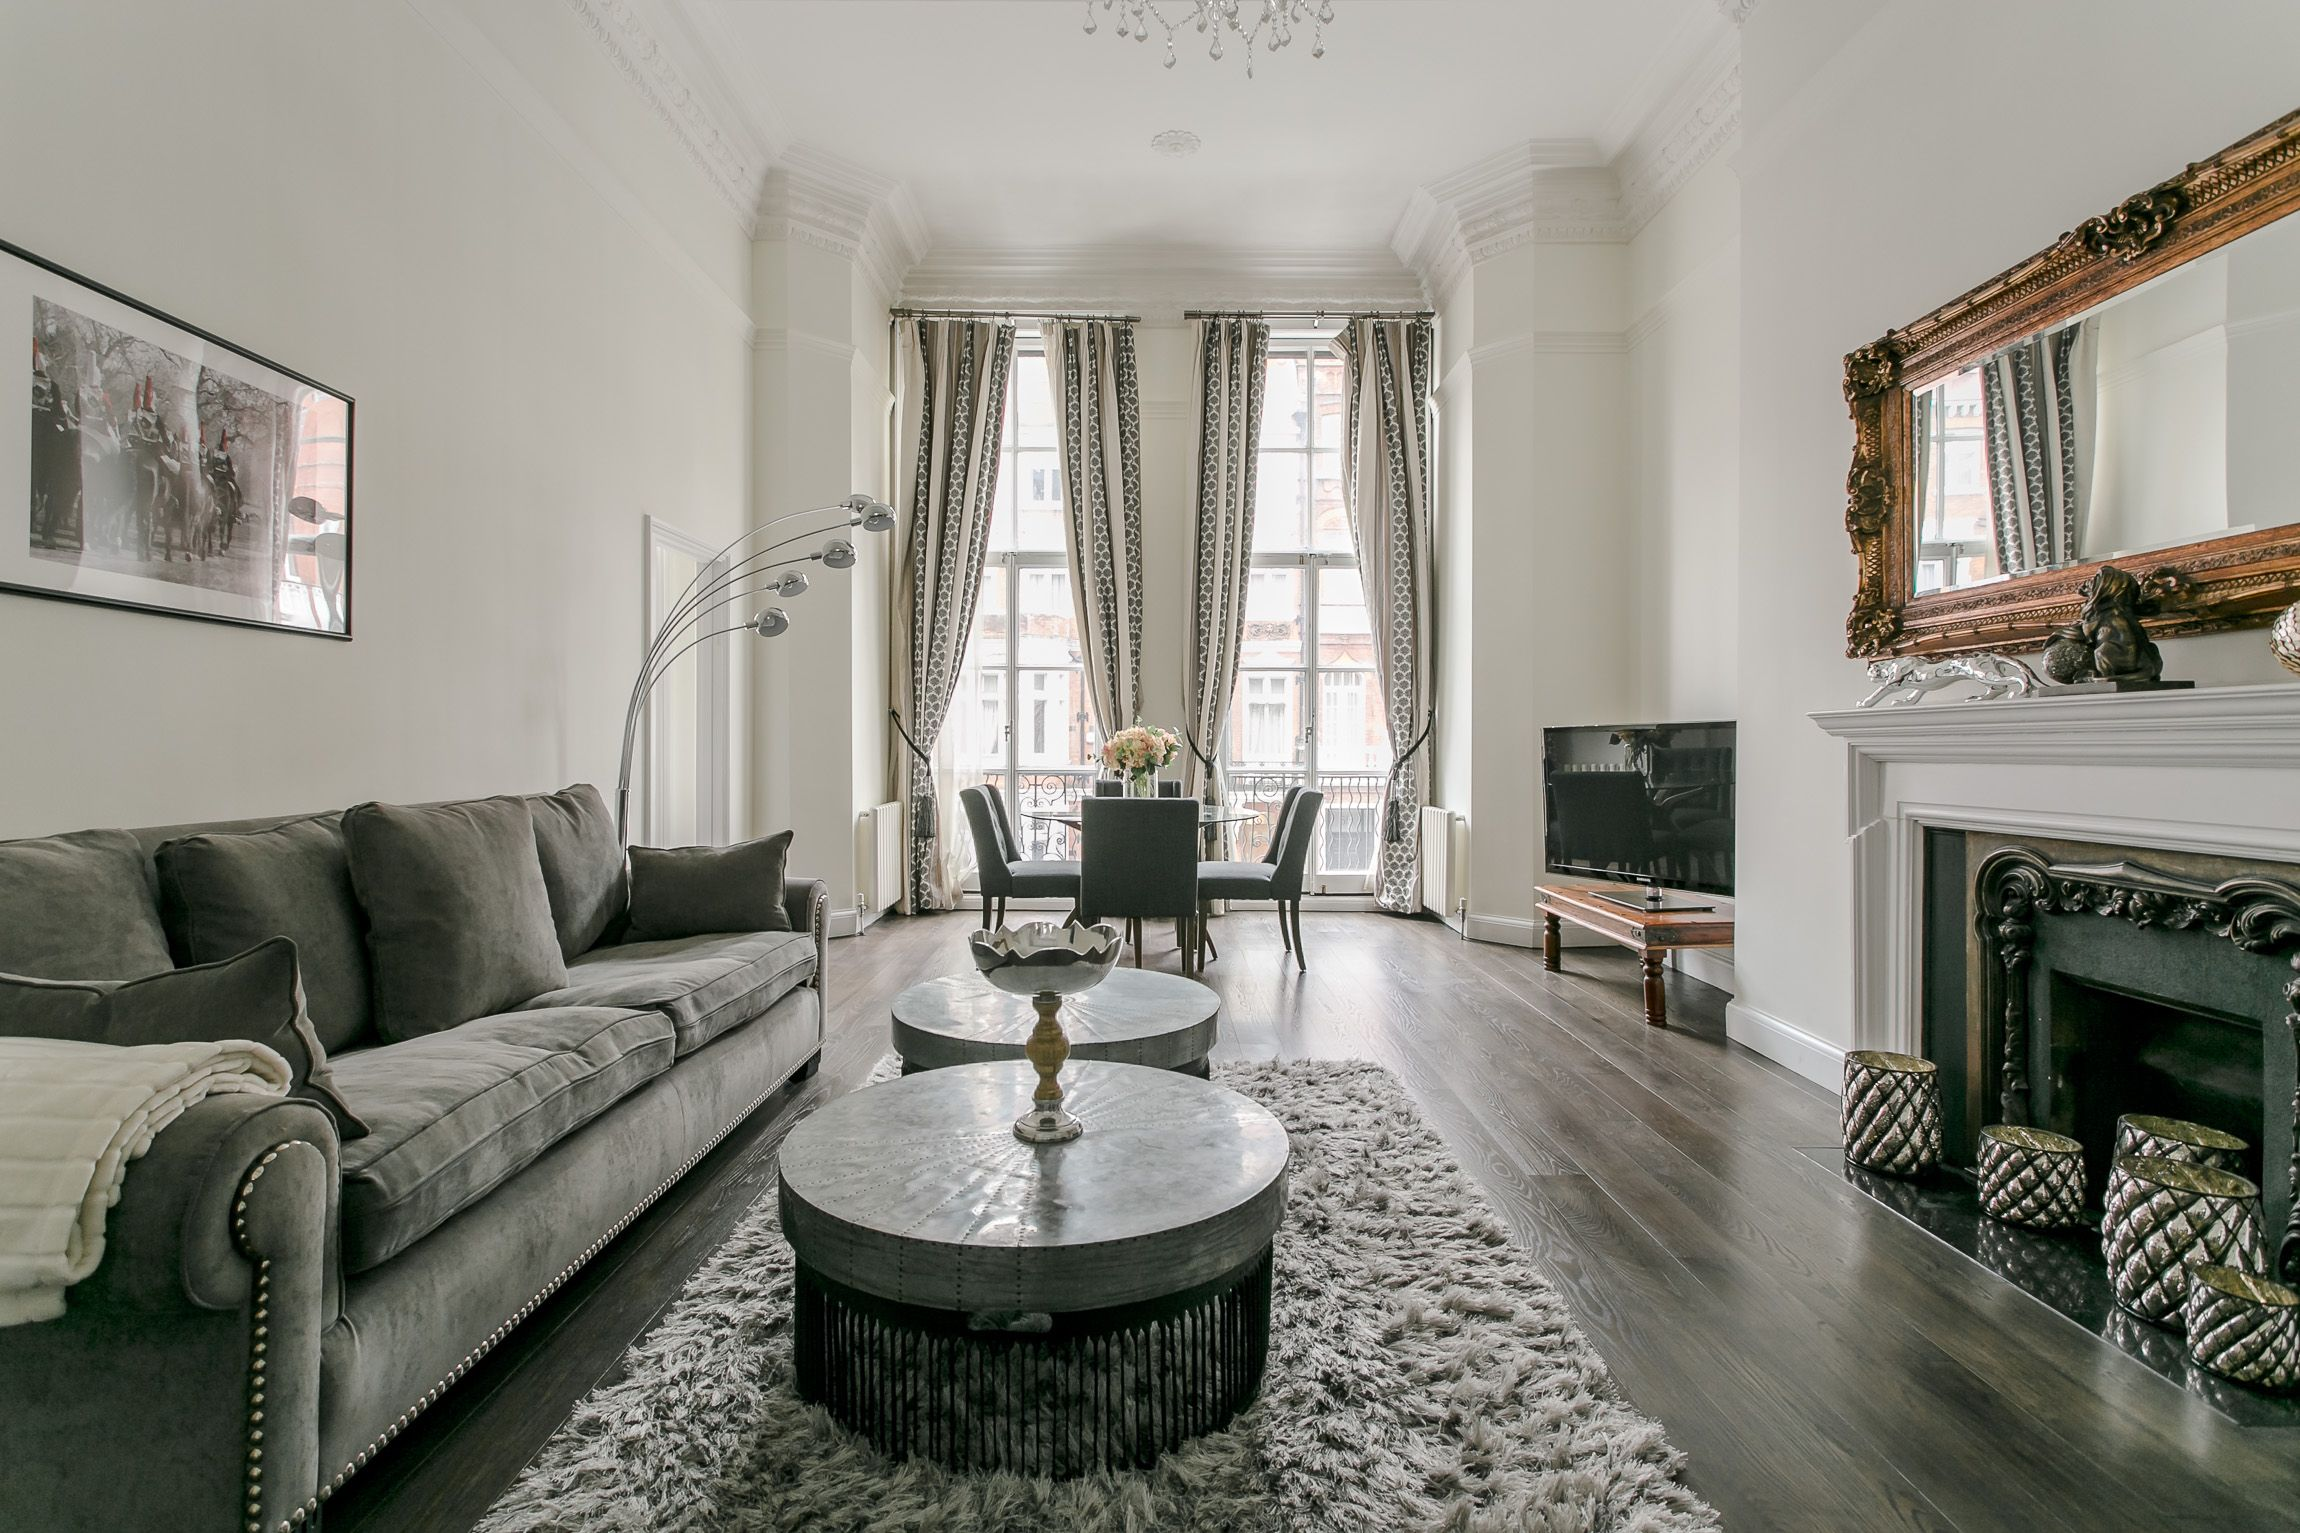 One bedroom apartment image by henniepenny on penny idea